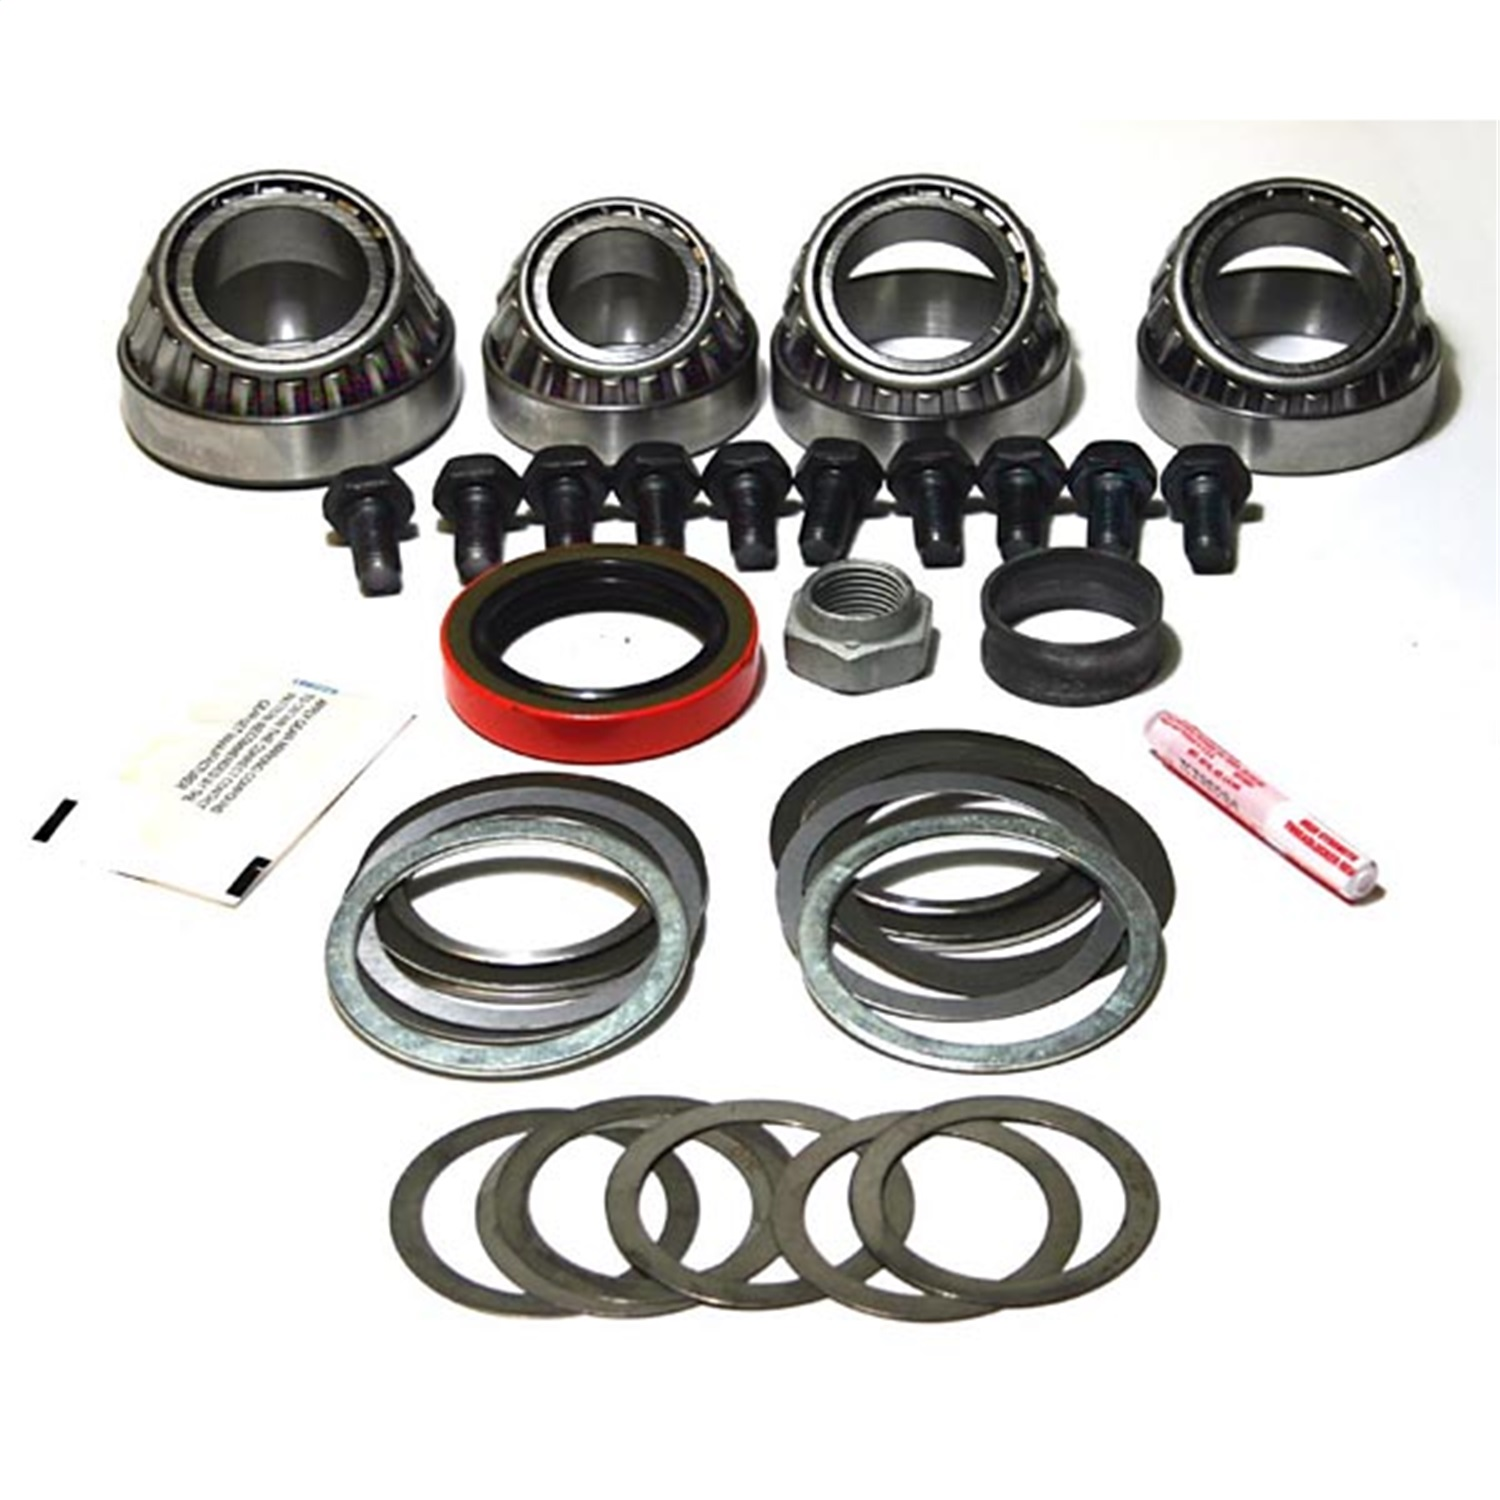 Alloy USA 352045 Alloy USA Ring And Pinion Overhaul Kit Fits 03-06 Wrangler (TJ)